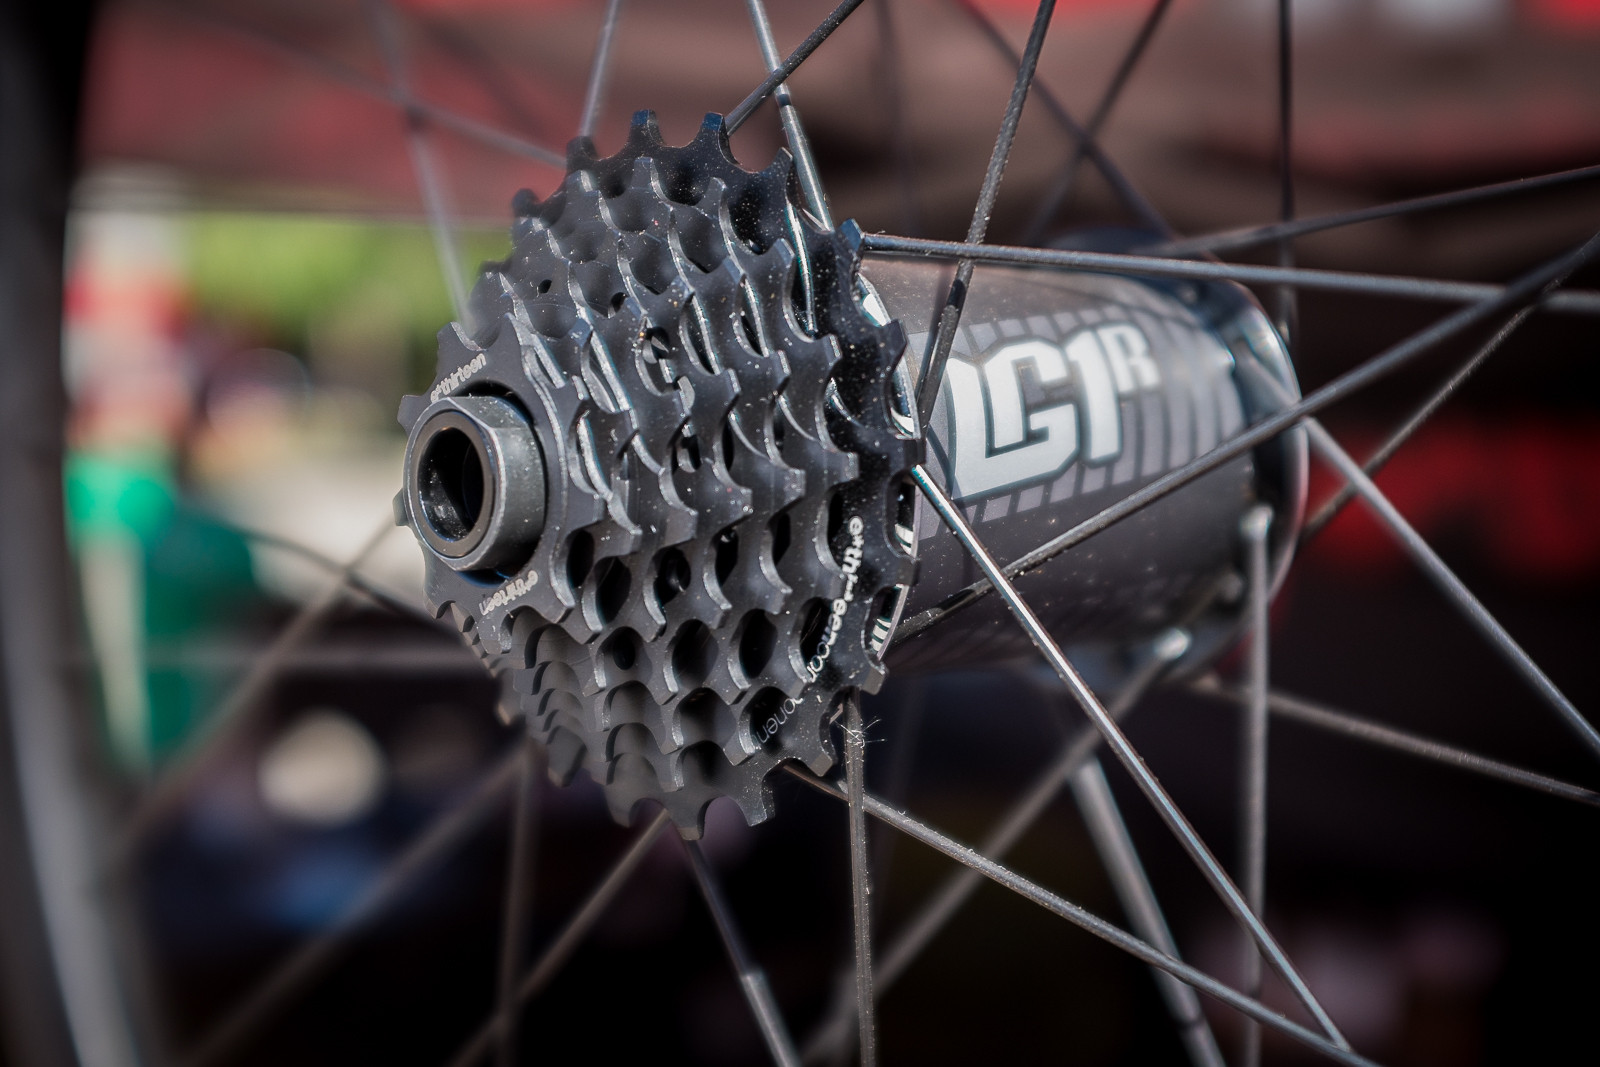 e*thirteen LG1r Wheelset with Integrated 9-21 Tooth Cassette - PIT BITS - New 2017 Products from Crankworx Whistler - Mountain Biking Pictures - Vital MTB